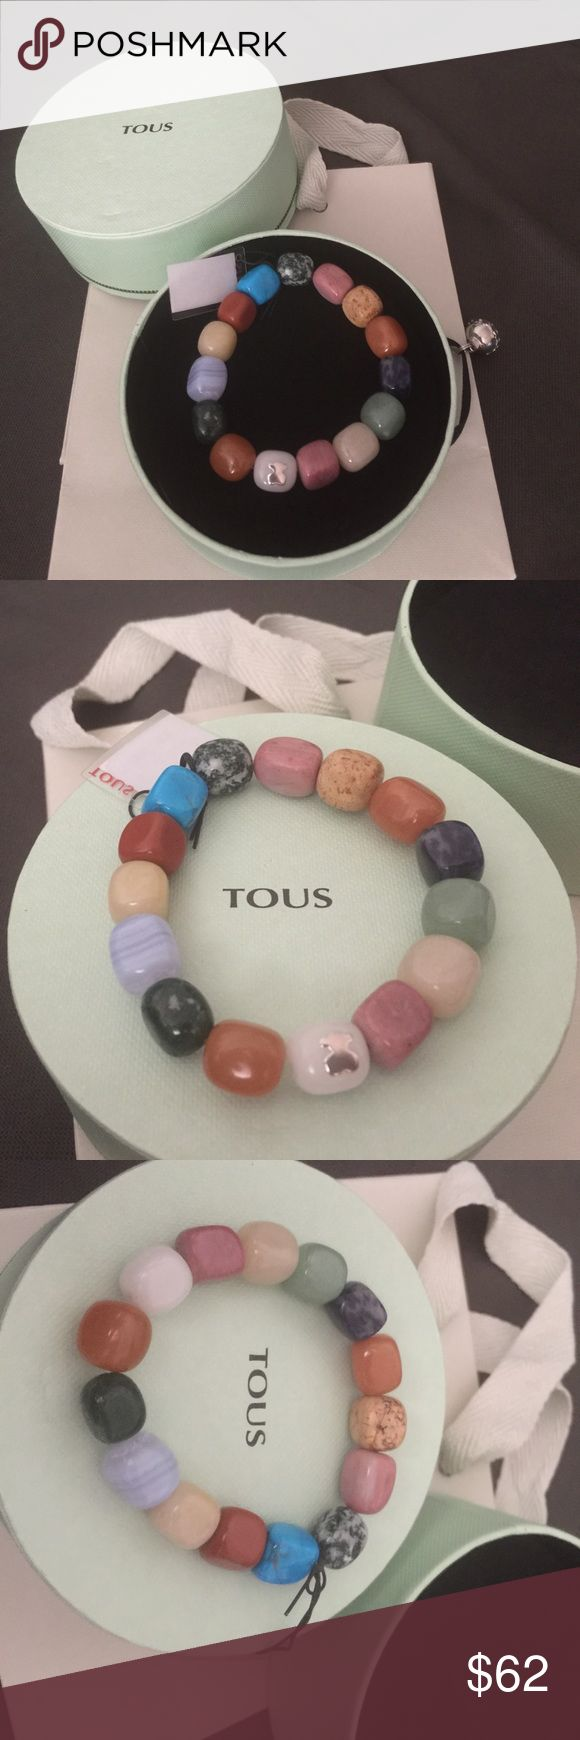 Authentic Tous Elastic Gemstones Bracelet NWT NWT AUTHENTIC TOUS ELASTACIZED BRACELET MADE UP OF VARIOUS GEM STONES. ON ONE OF THE STONES IS A STERLING SILVER BEAR. THE BRACELET IS ADJUSTABLE IN SIZE.  New and never worn. Tous box and shopping bag are included.   *****Sorry, the price is firm******* Get it less by PP or ♏️ercari. Tous Jewelry Bracelets